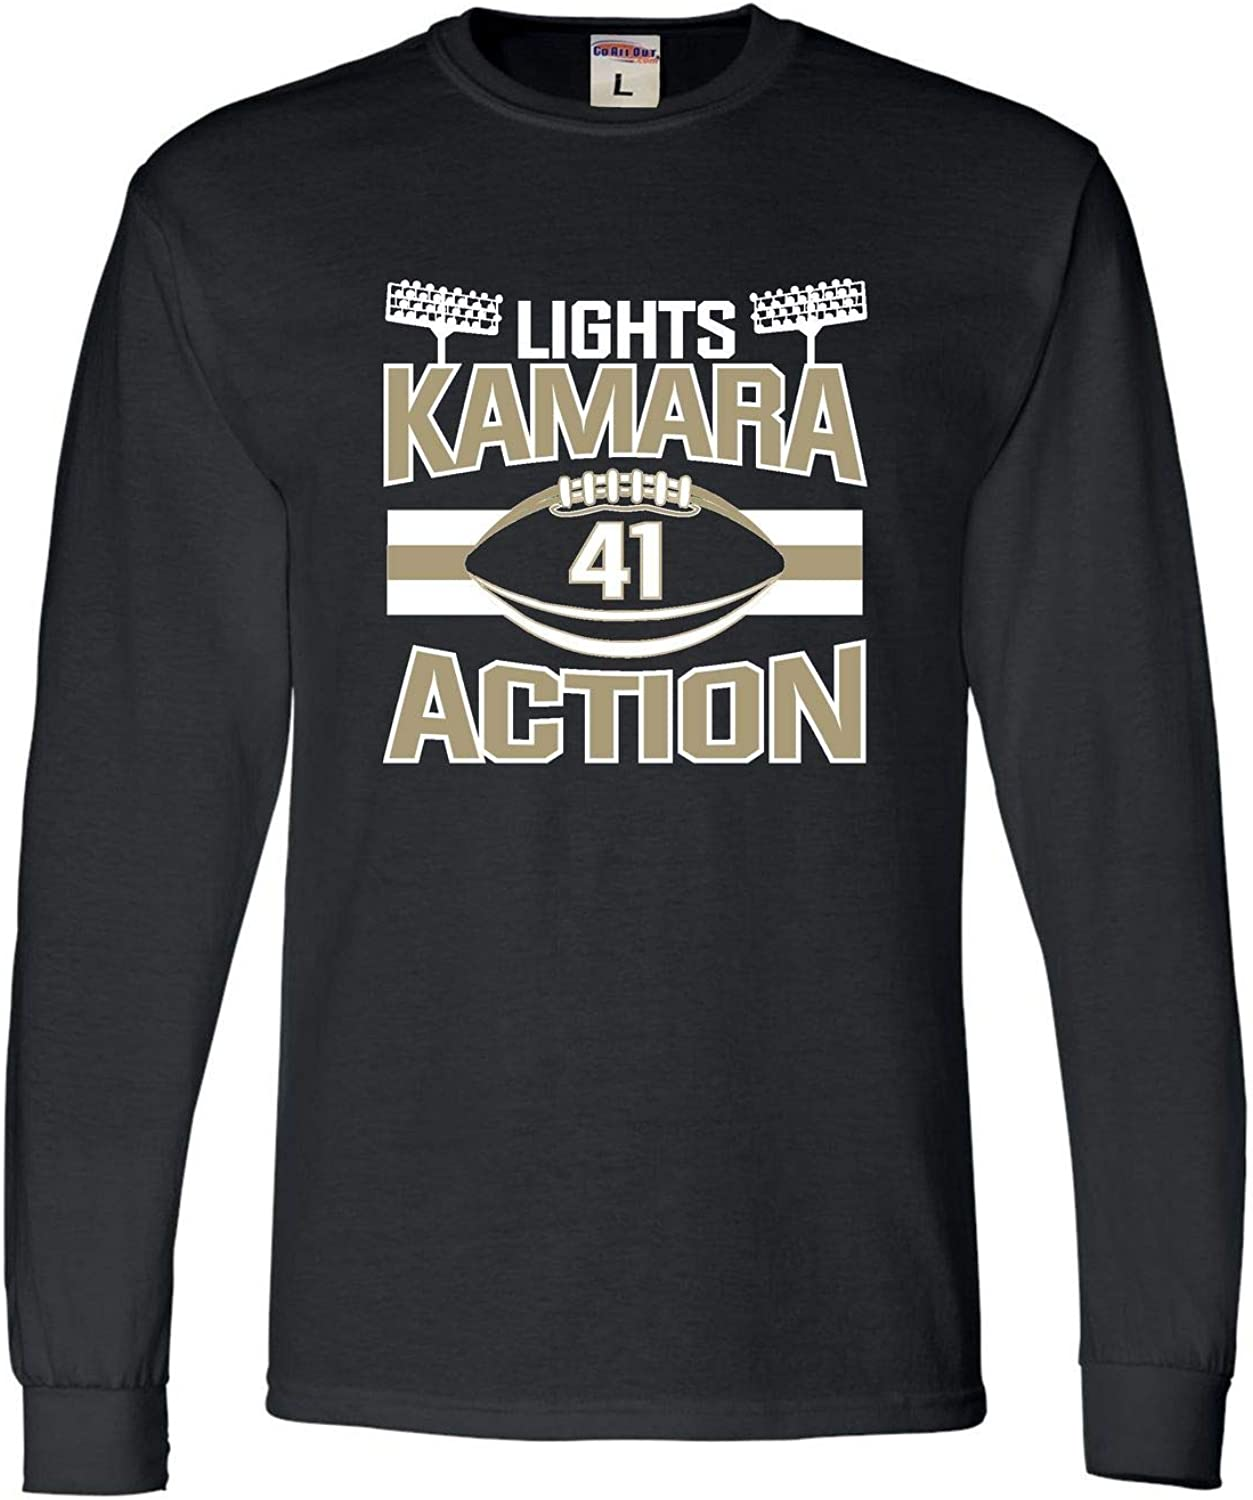 Go All Out Adult Lights Kamara Action Long Sleeve T-Shirt